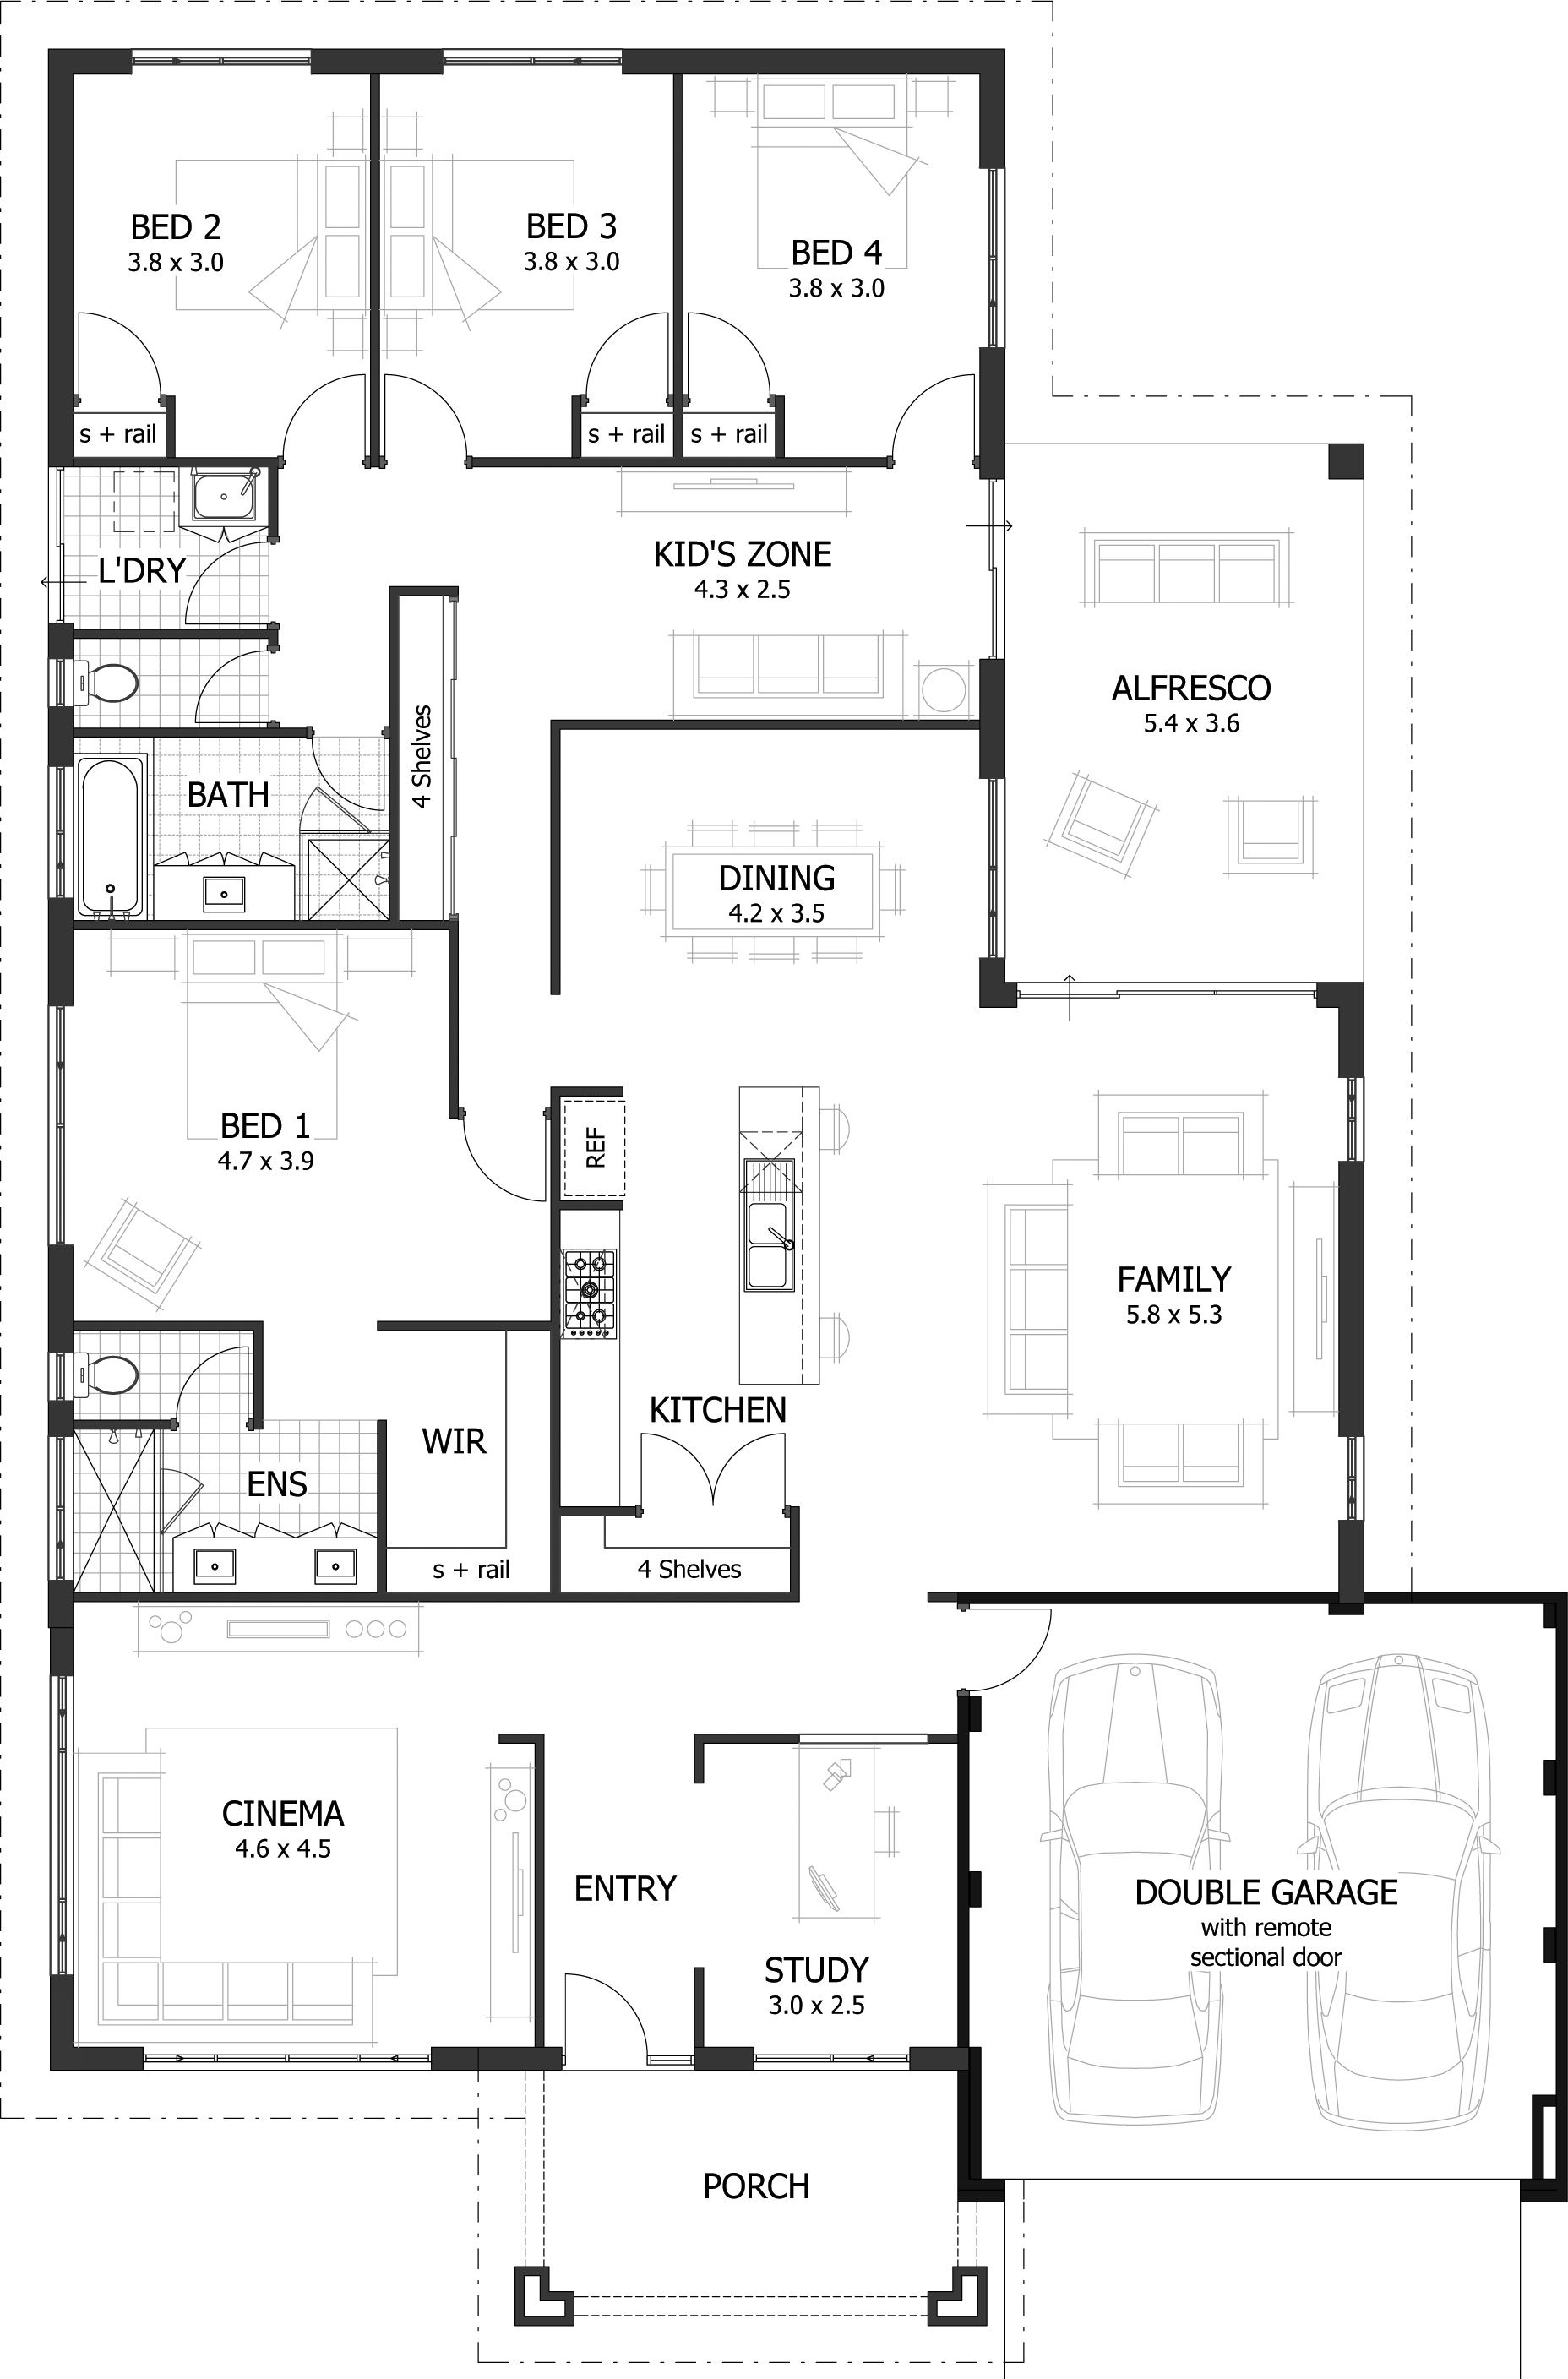 4 Bedroom House Plans Home Designs 4 Bedroom House Plans 5